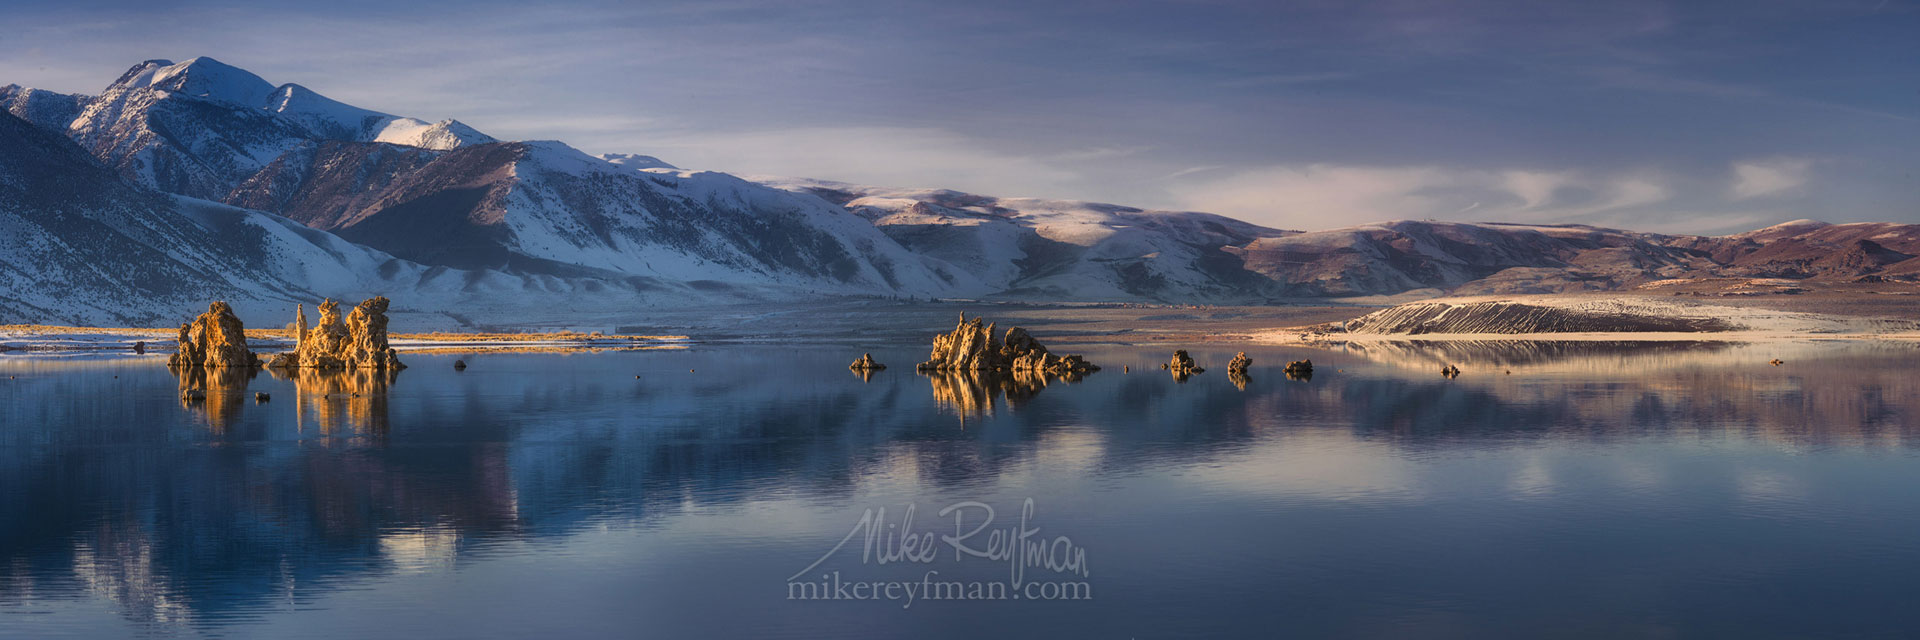 Mono Lake, Tufa State Natural Reserve, Eastern Sierra, California, USA ML1-MRN3X0606-08-Pano - Mono Lake Tufa State Natural Reserve, Eastern Sierra, California - Mike Reyfman Photography